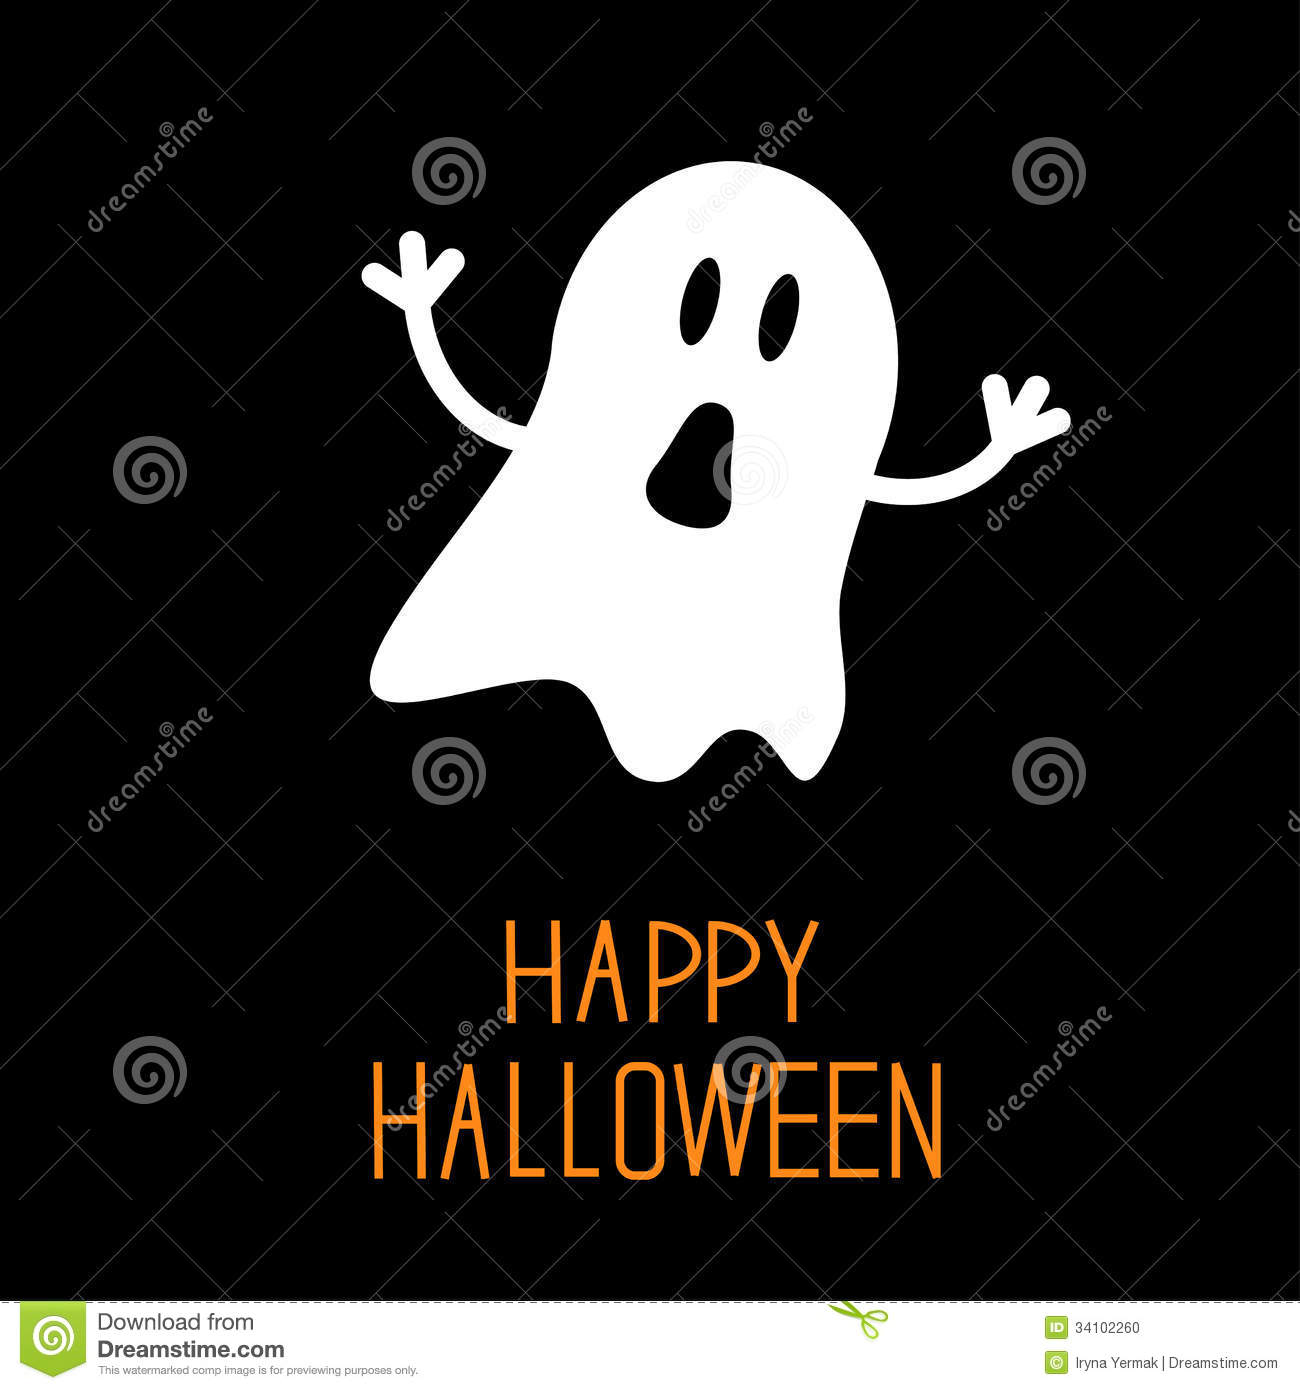 Vector halloween symbols witches pumpkins ghost stock vector funny halloween ghost card stock photo biocorpaavc Choice Image